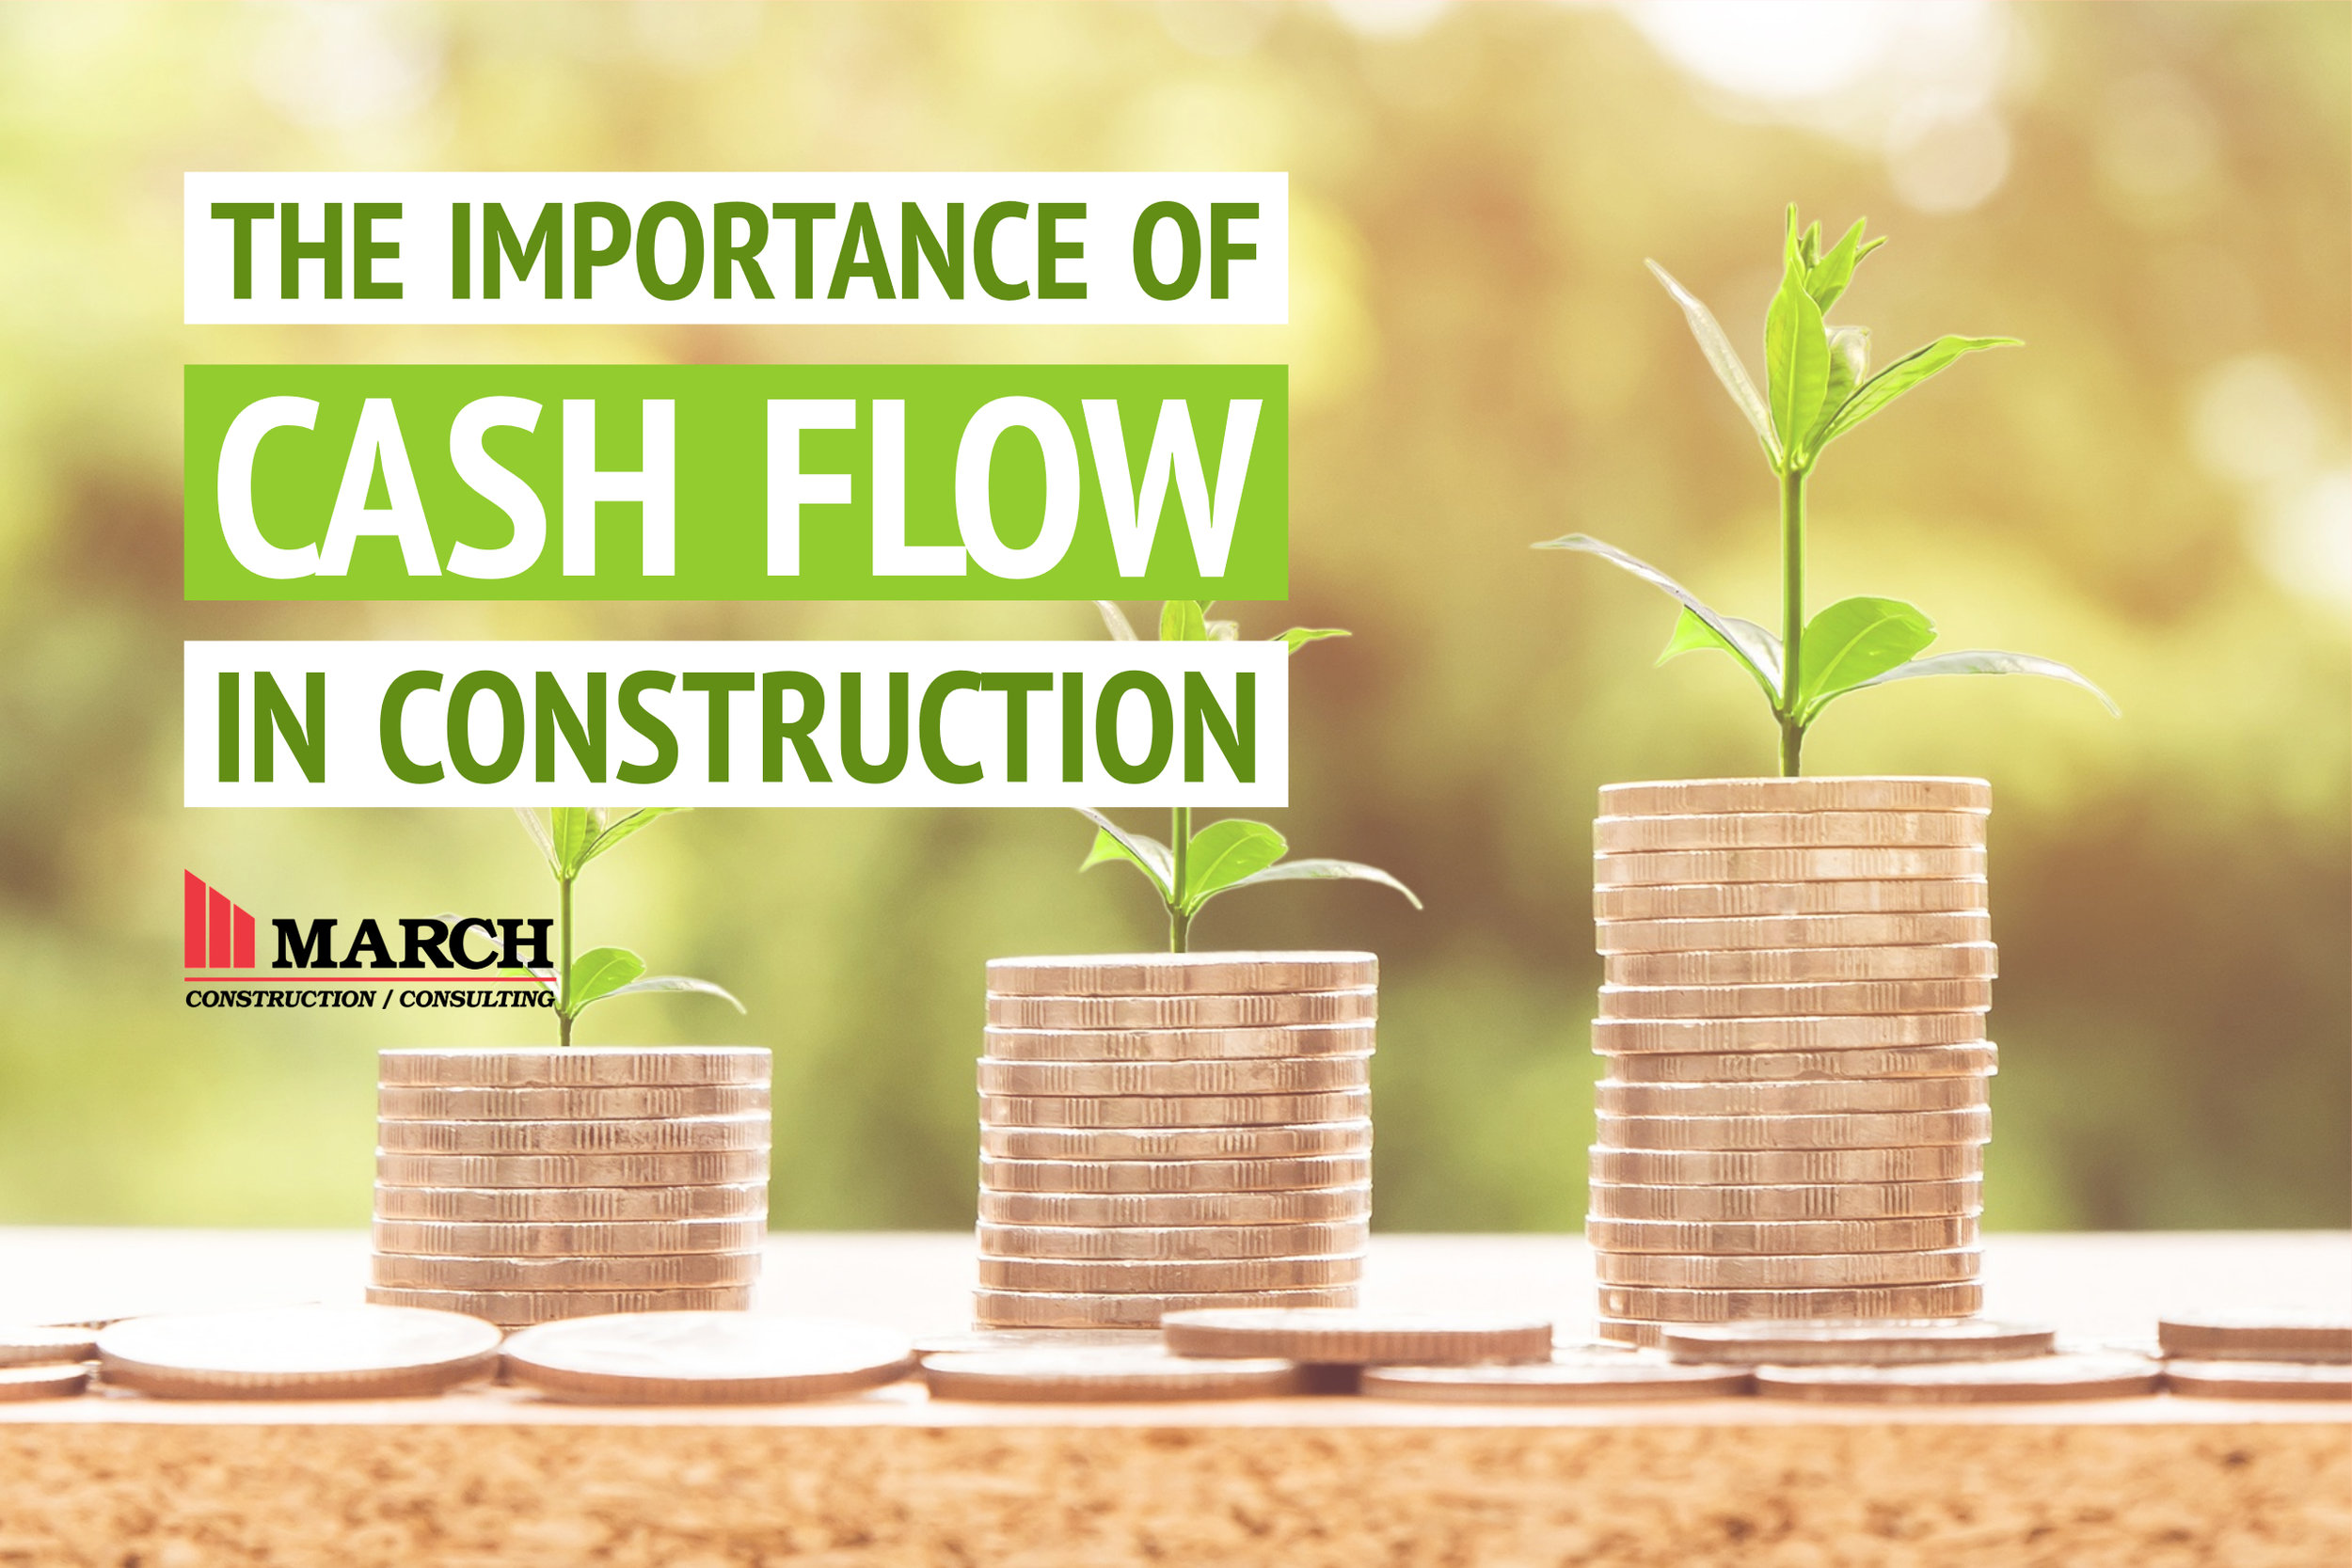 Toolbox: The Importance of Cash Flow in Construction by Artan Balaj - March Construction